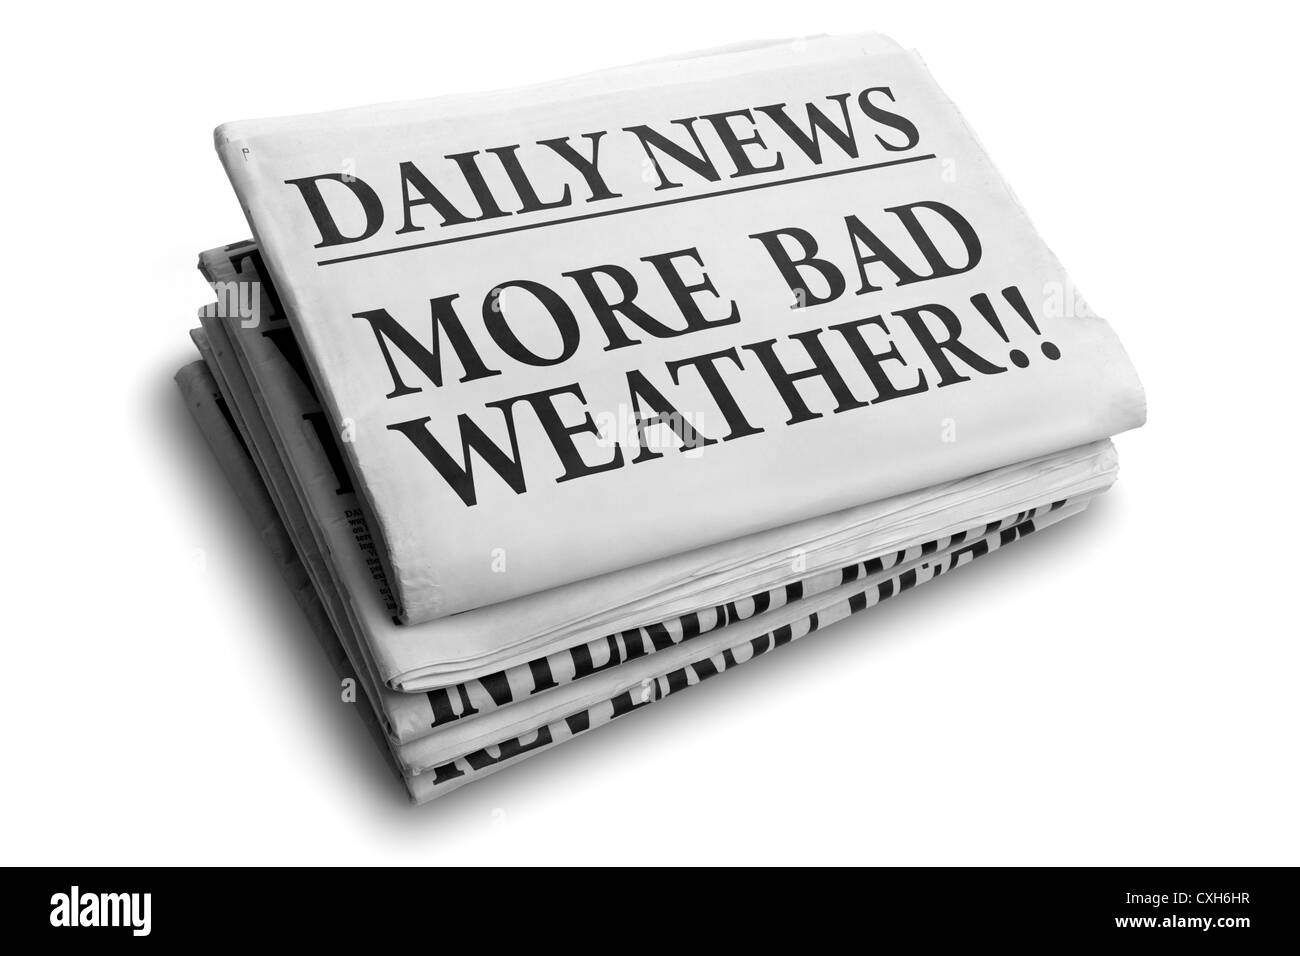 More bad weather daily newspaper headline - Stock Image